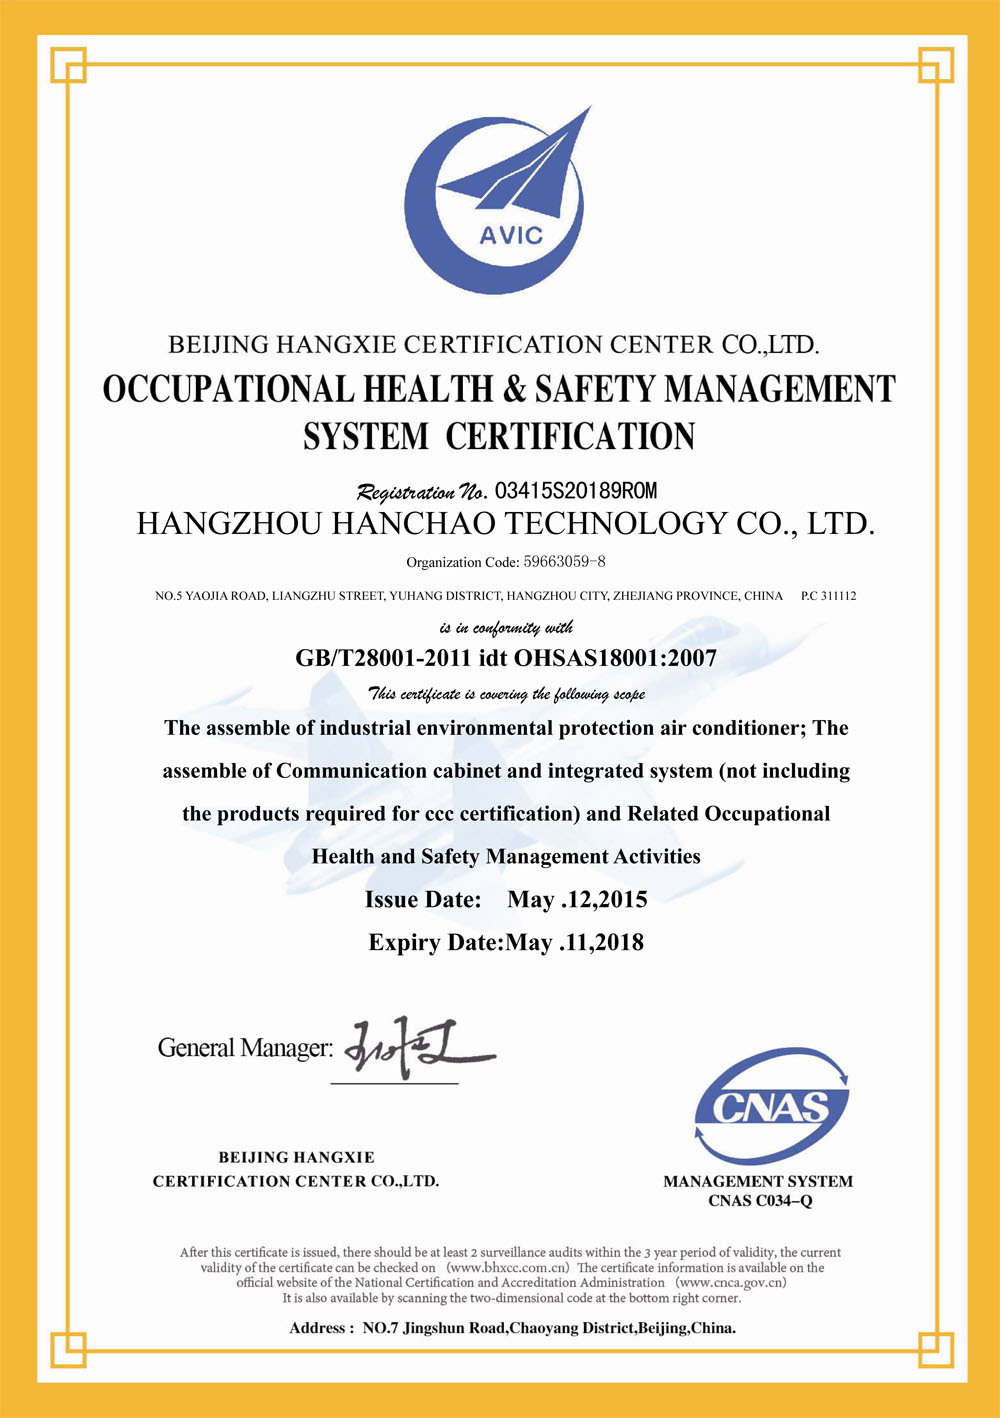 OHSAS 18001 of air conditioner an communications cabinets